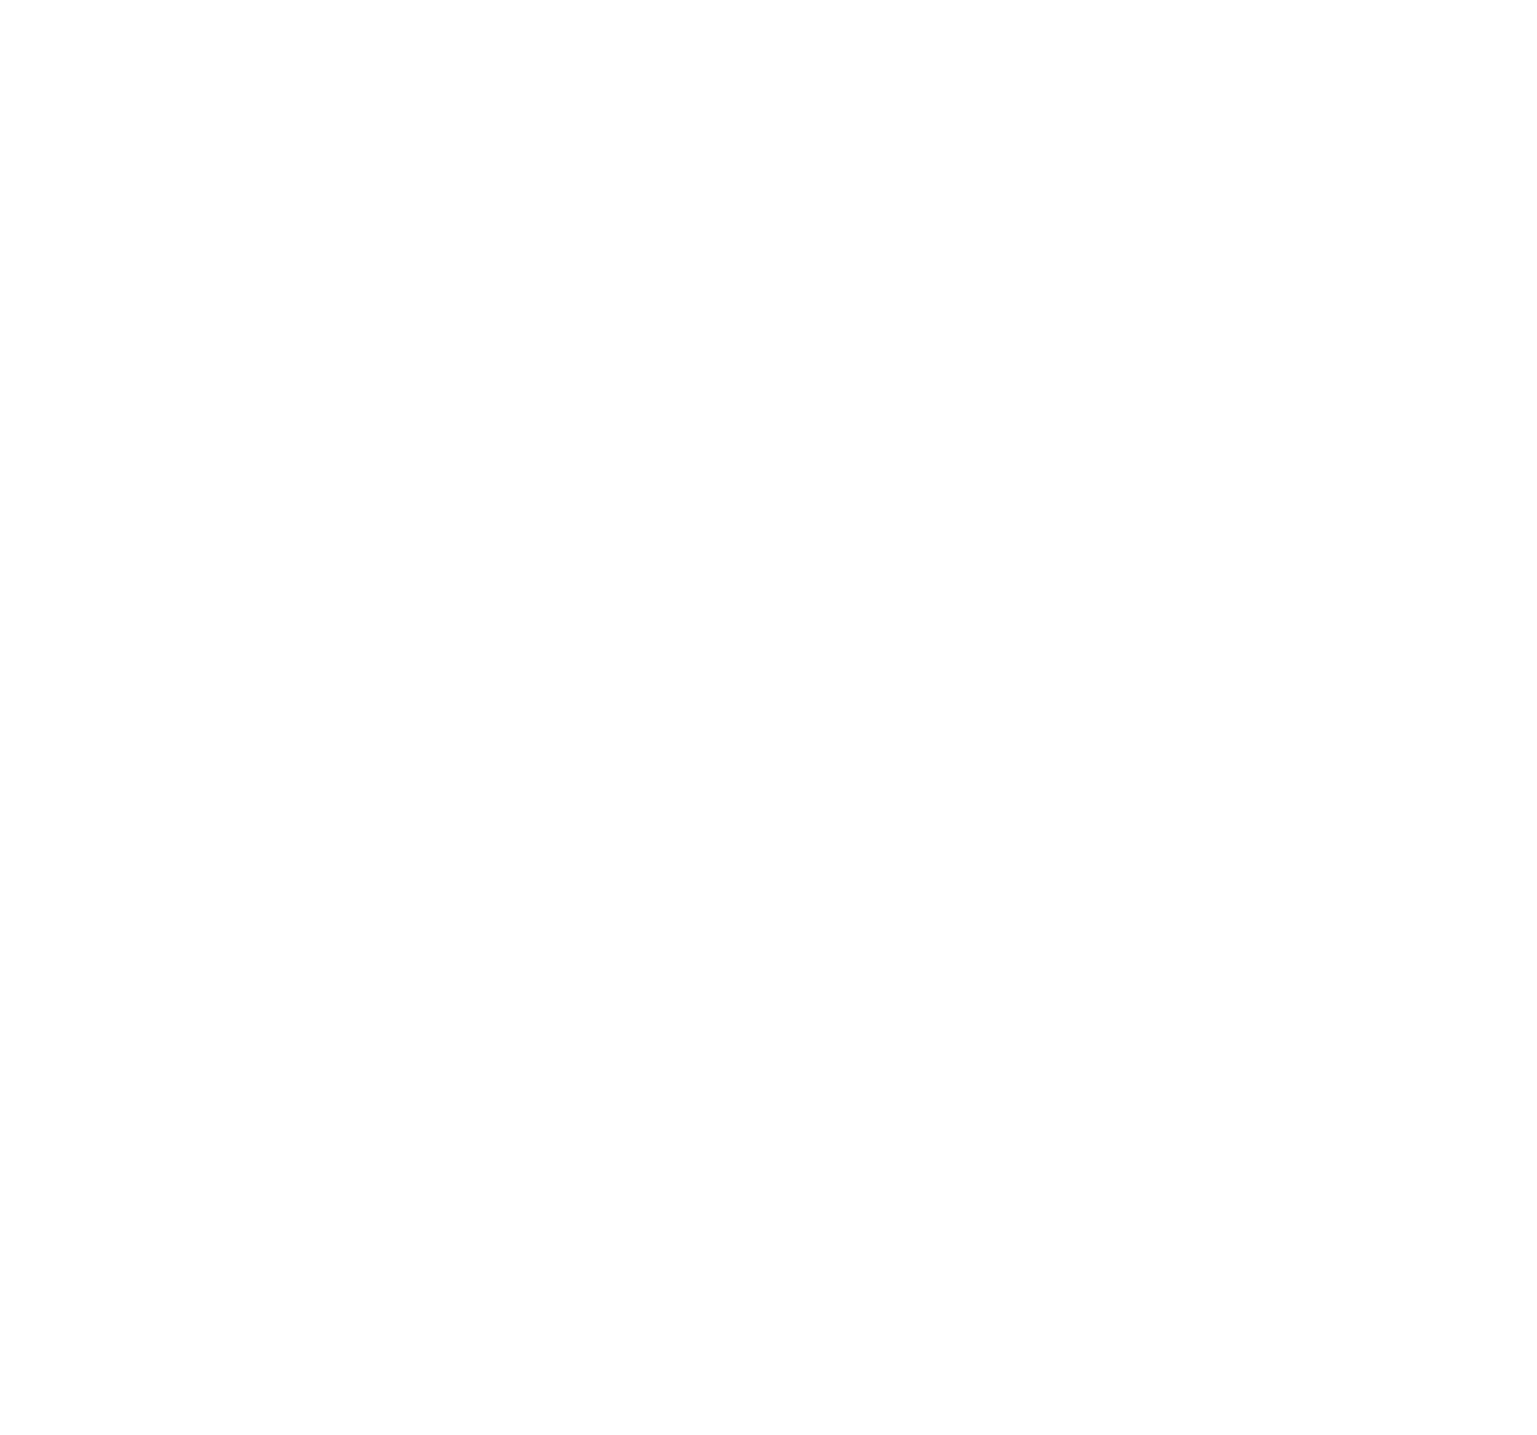 Alquimia Projects